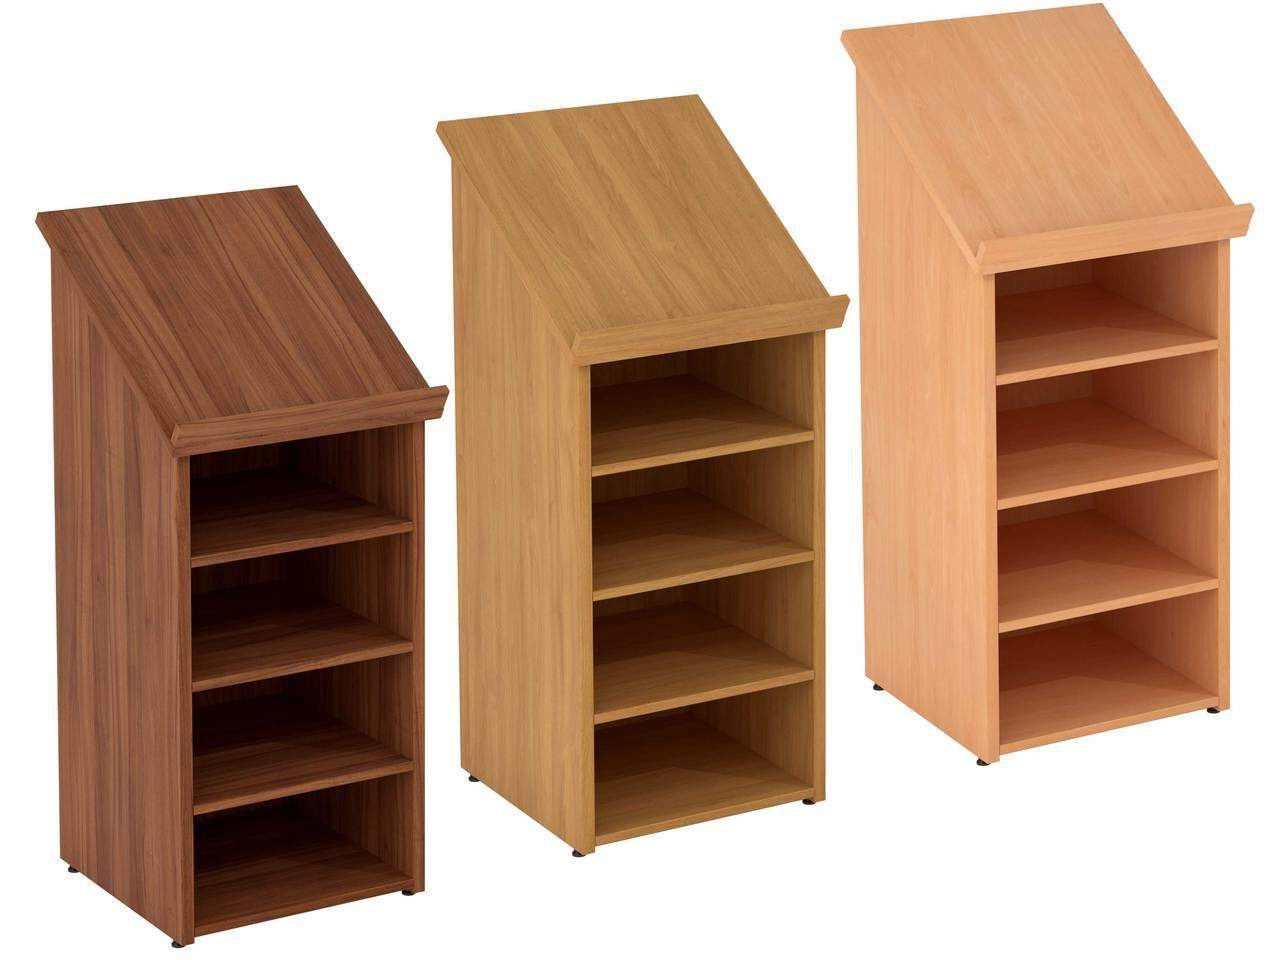 TCS nTree Presentation Podium Lectern with Open Shelving Storage